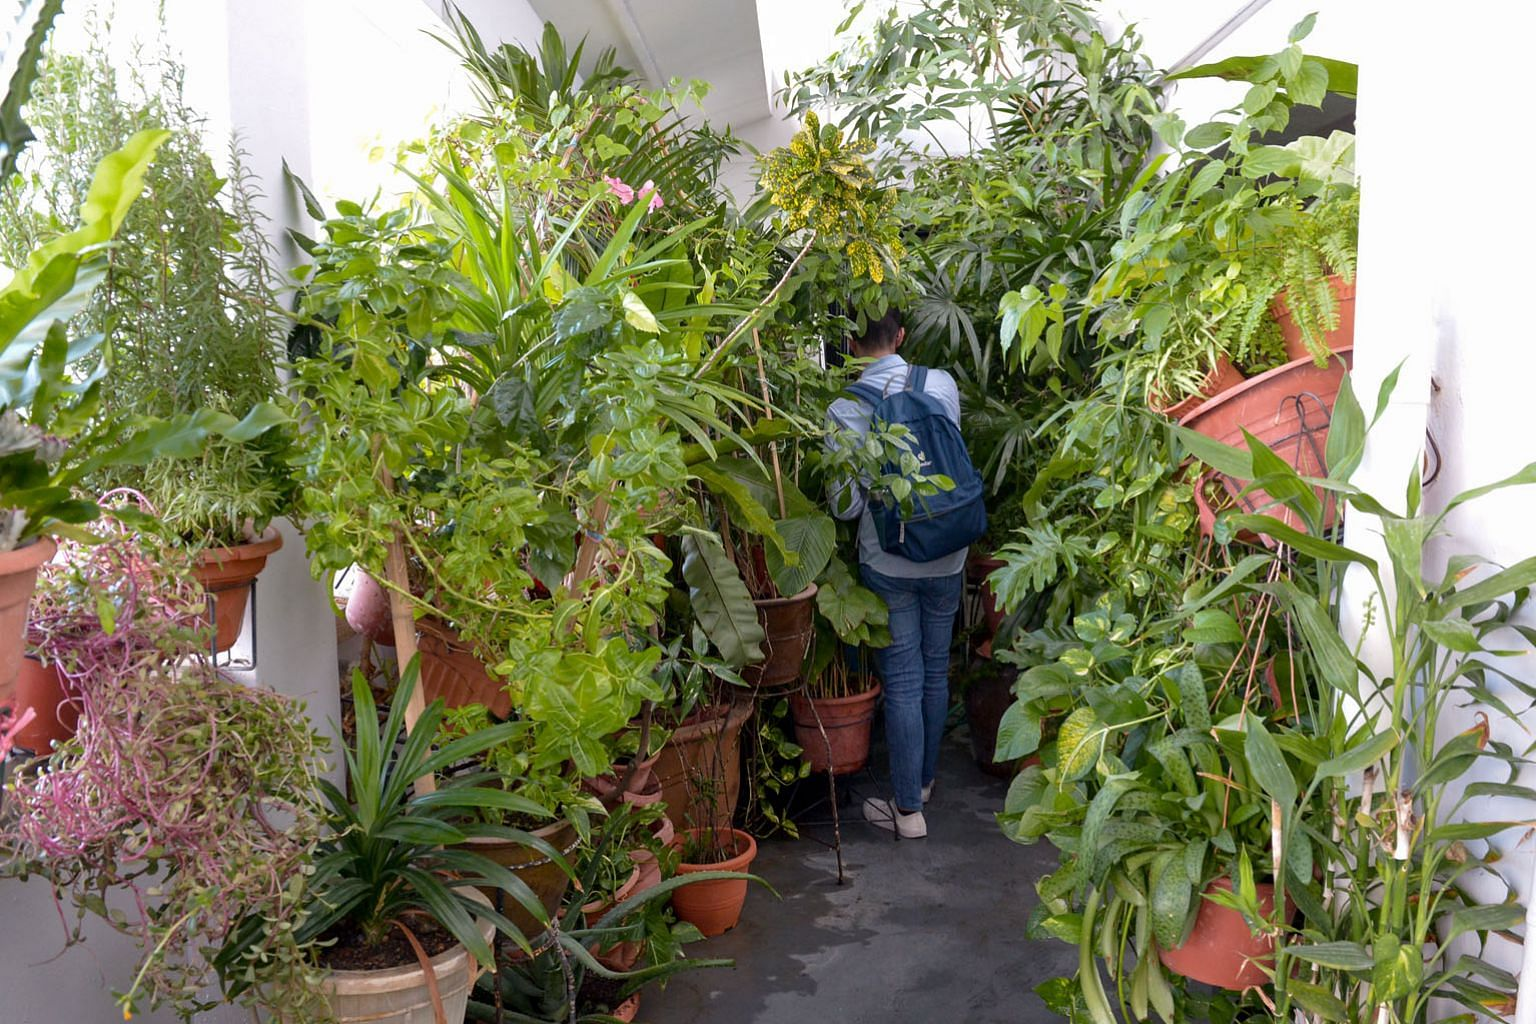 """Above: A reporter making his way through the potted plants. Left: A view of the """"jungle"""" from an adjacent HDB block. The town council says it has advised the resident several times not to place too many potted plants in the common area."""